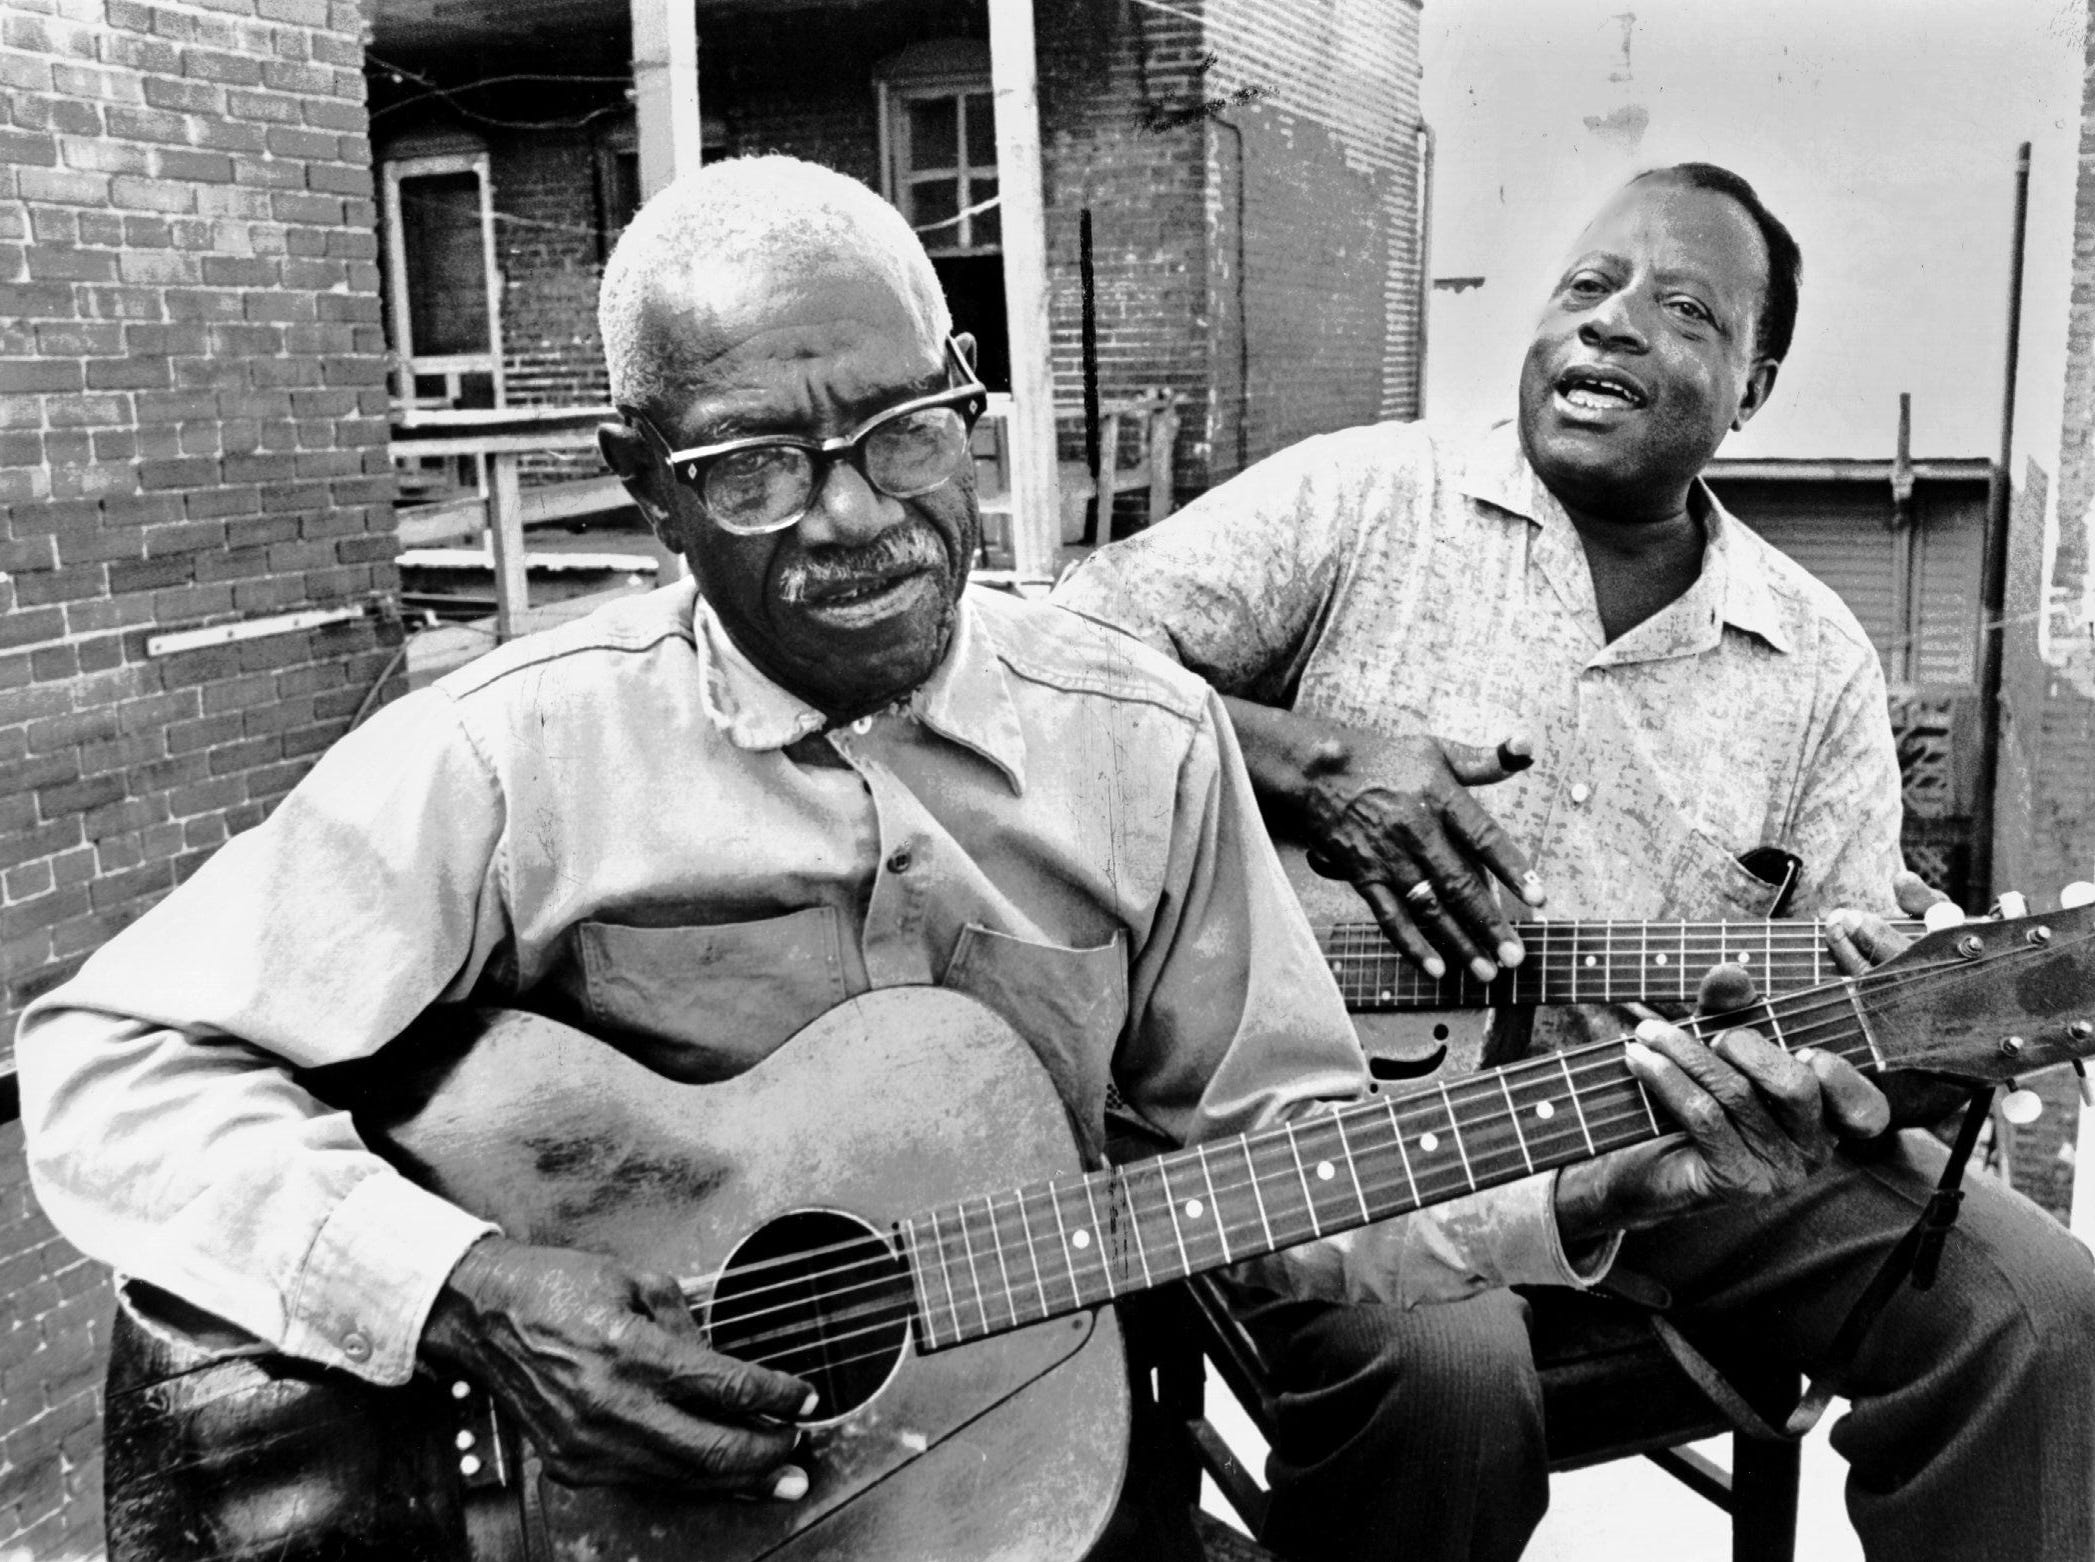 Furry Lewis and Bukka (Booker T. Washington) White perform in May 1967.  Lewis, considered by many to be the quintessential Beale Street bluesman, was ?rediscovered? by the national blues-folk revival in the 1960s. He was featured as an opening act at the Rolling Stones 1975 appearance at the Liberty Bowl. Bukka White first recorded in 1930 for Victor. He died Feb. 26, 1977.